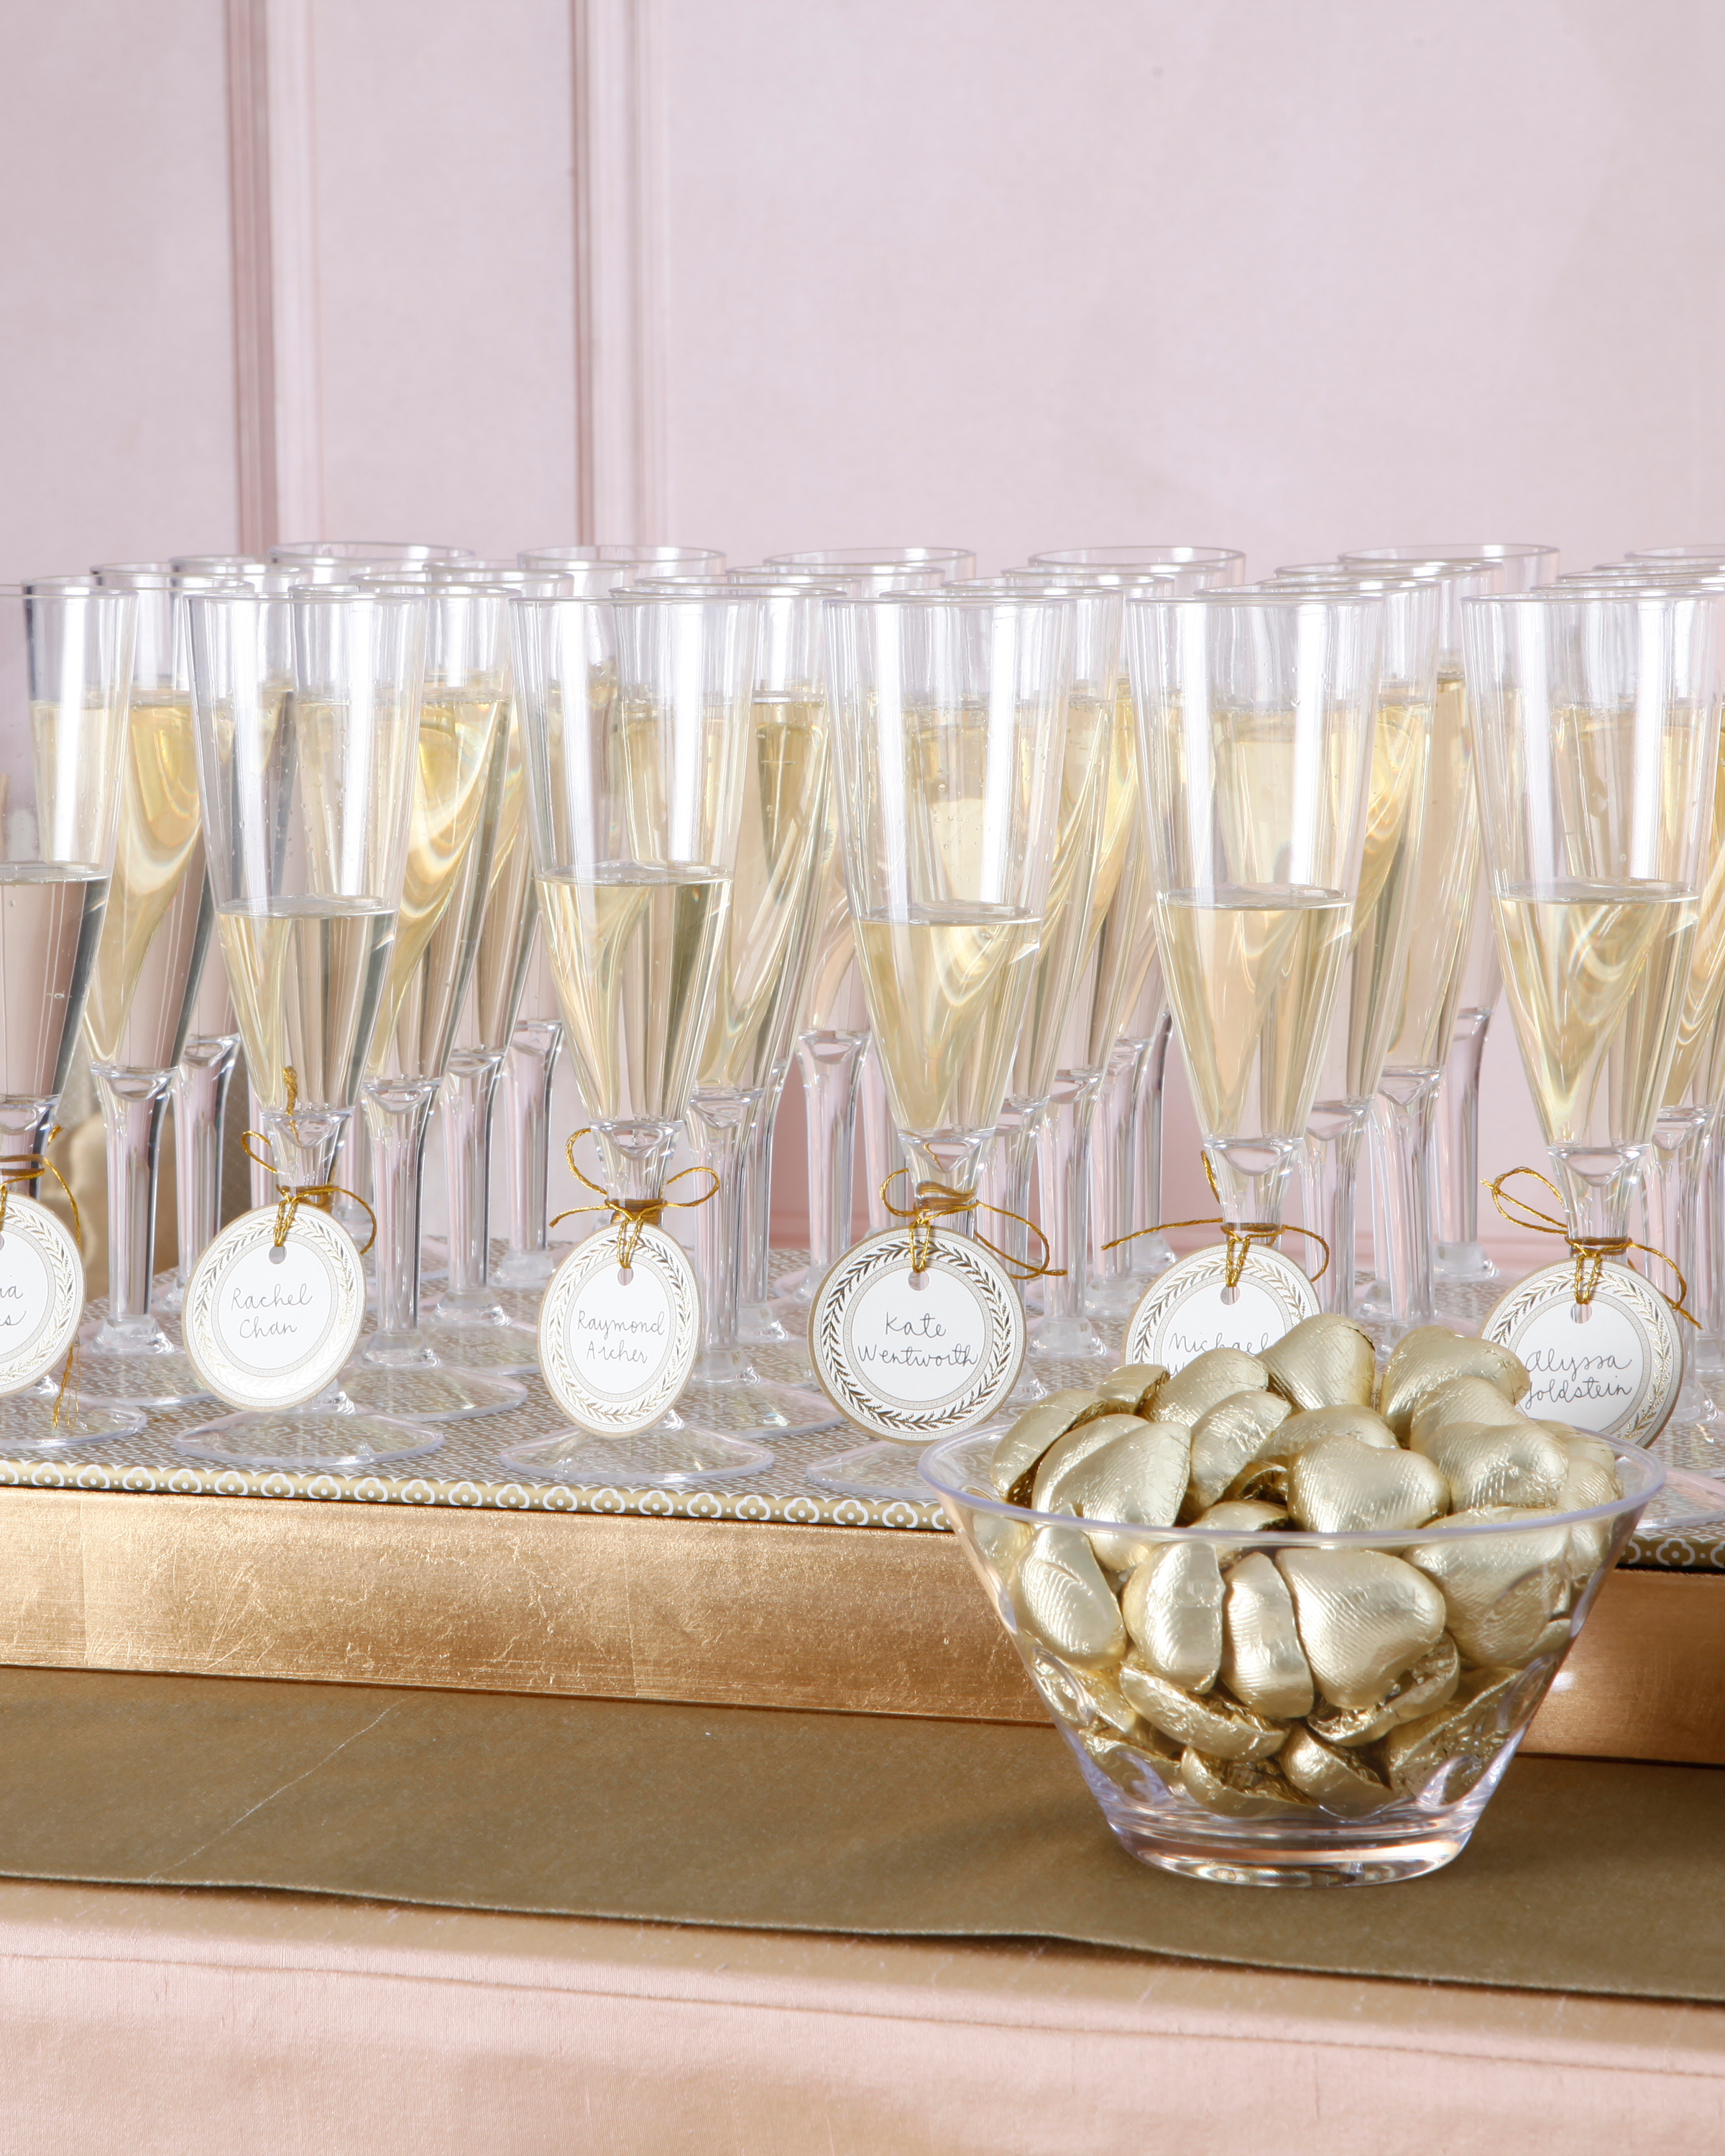 Jcpenney Gift Registry Wedding: Celebrate With Champagne